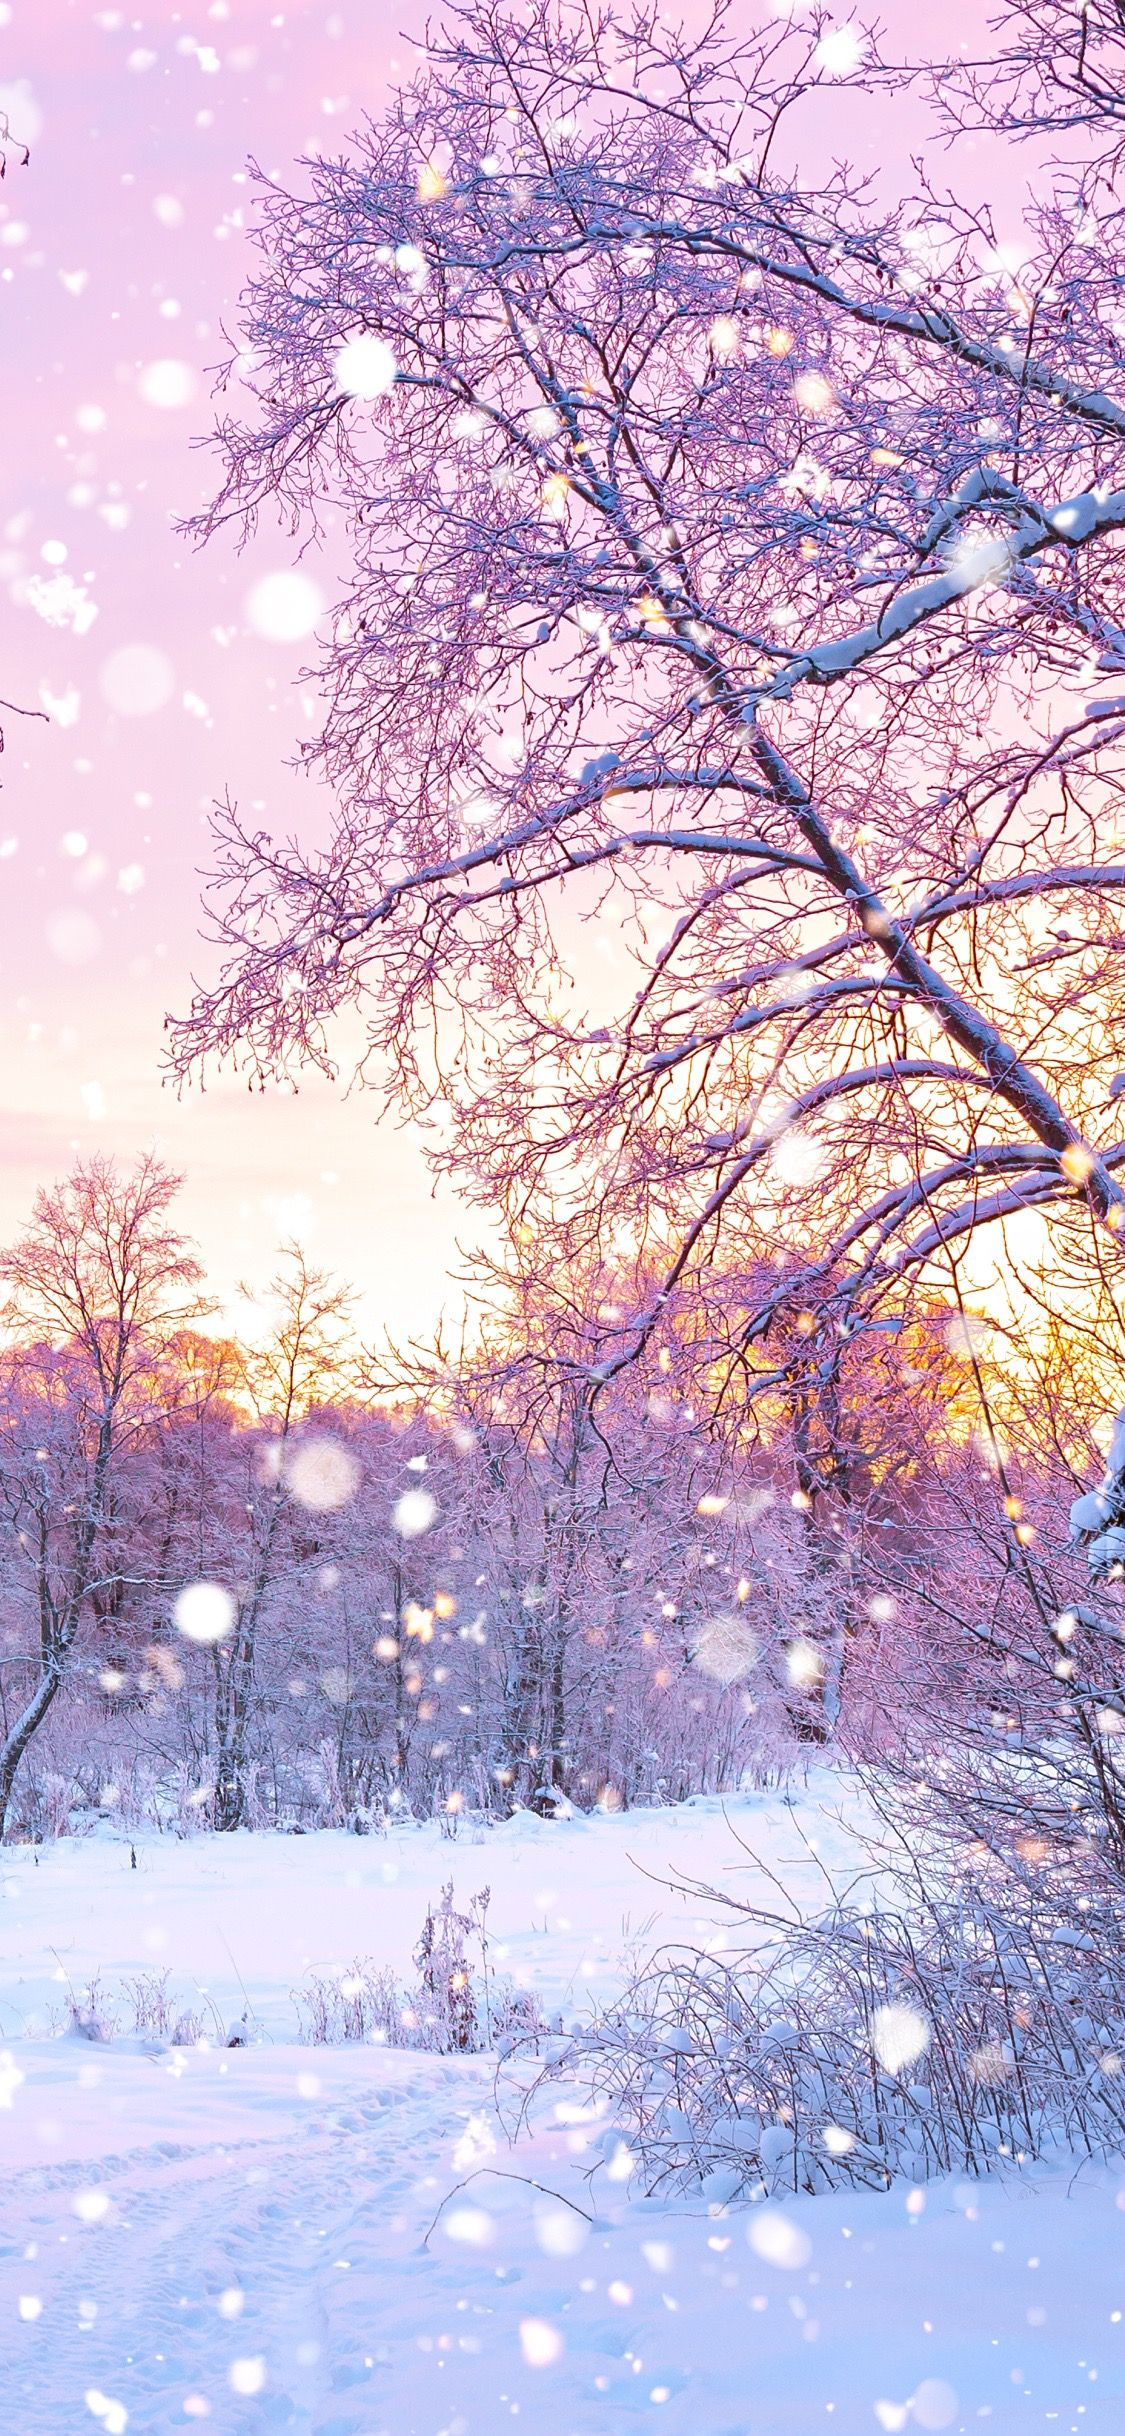 Snow iPhone wallpaper Nature wallpaper Winter wallpaper 1125x2436